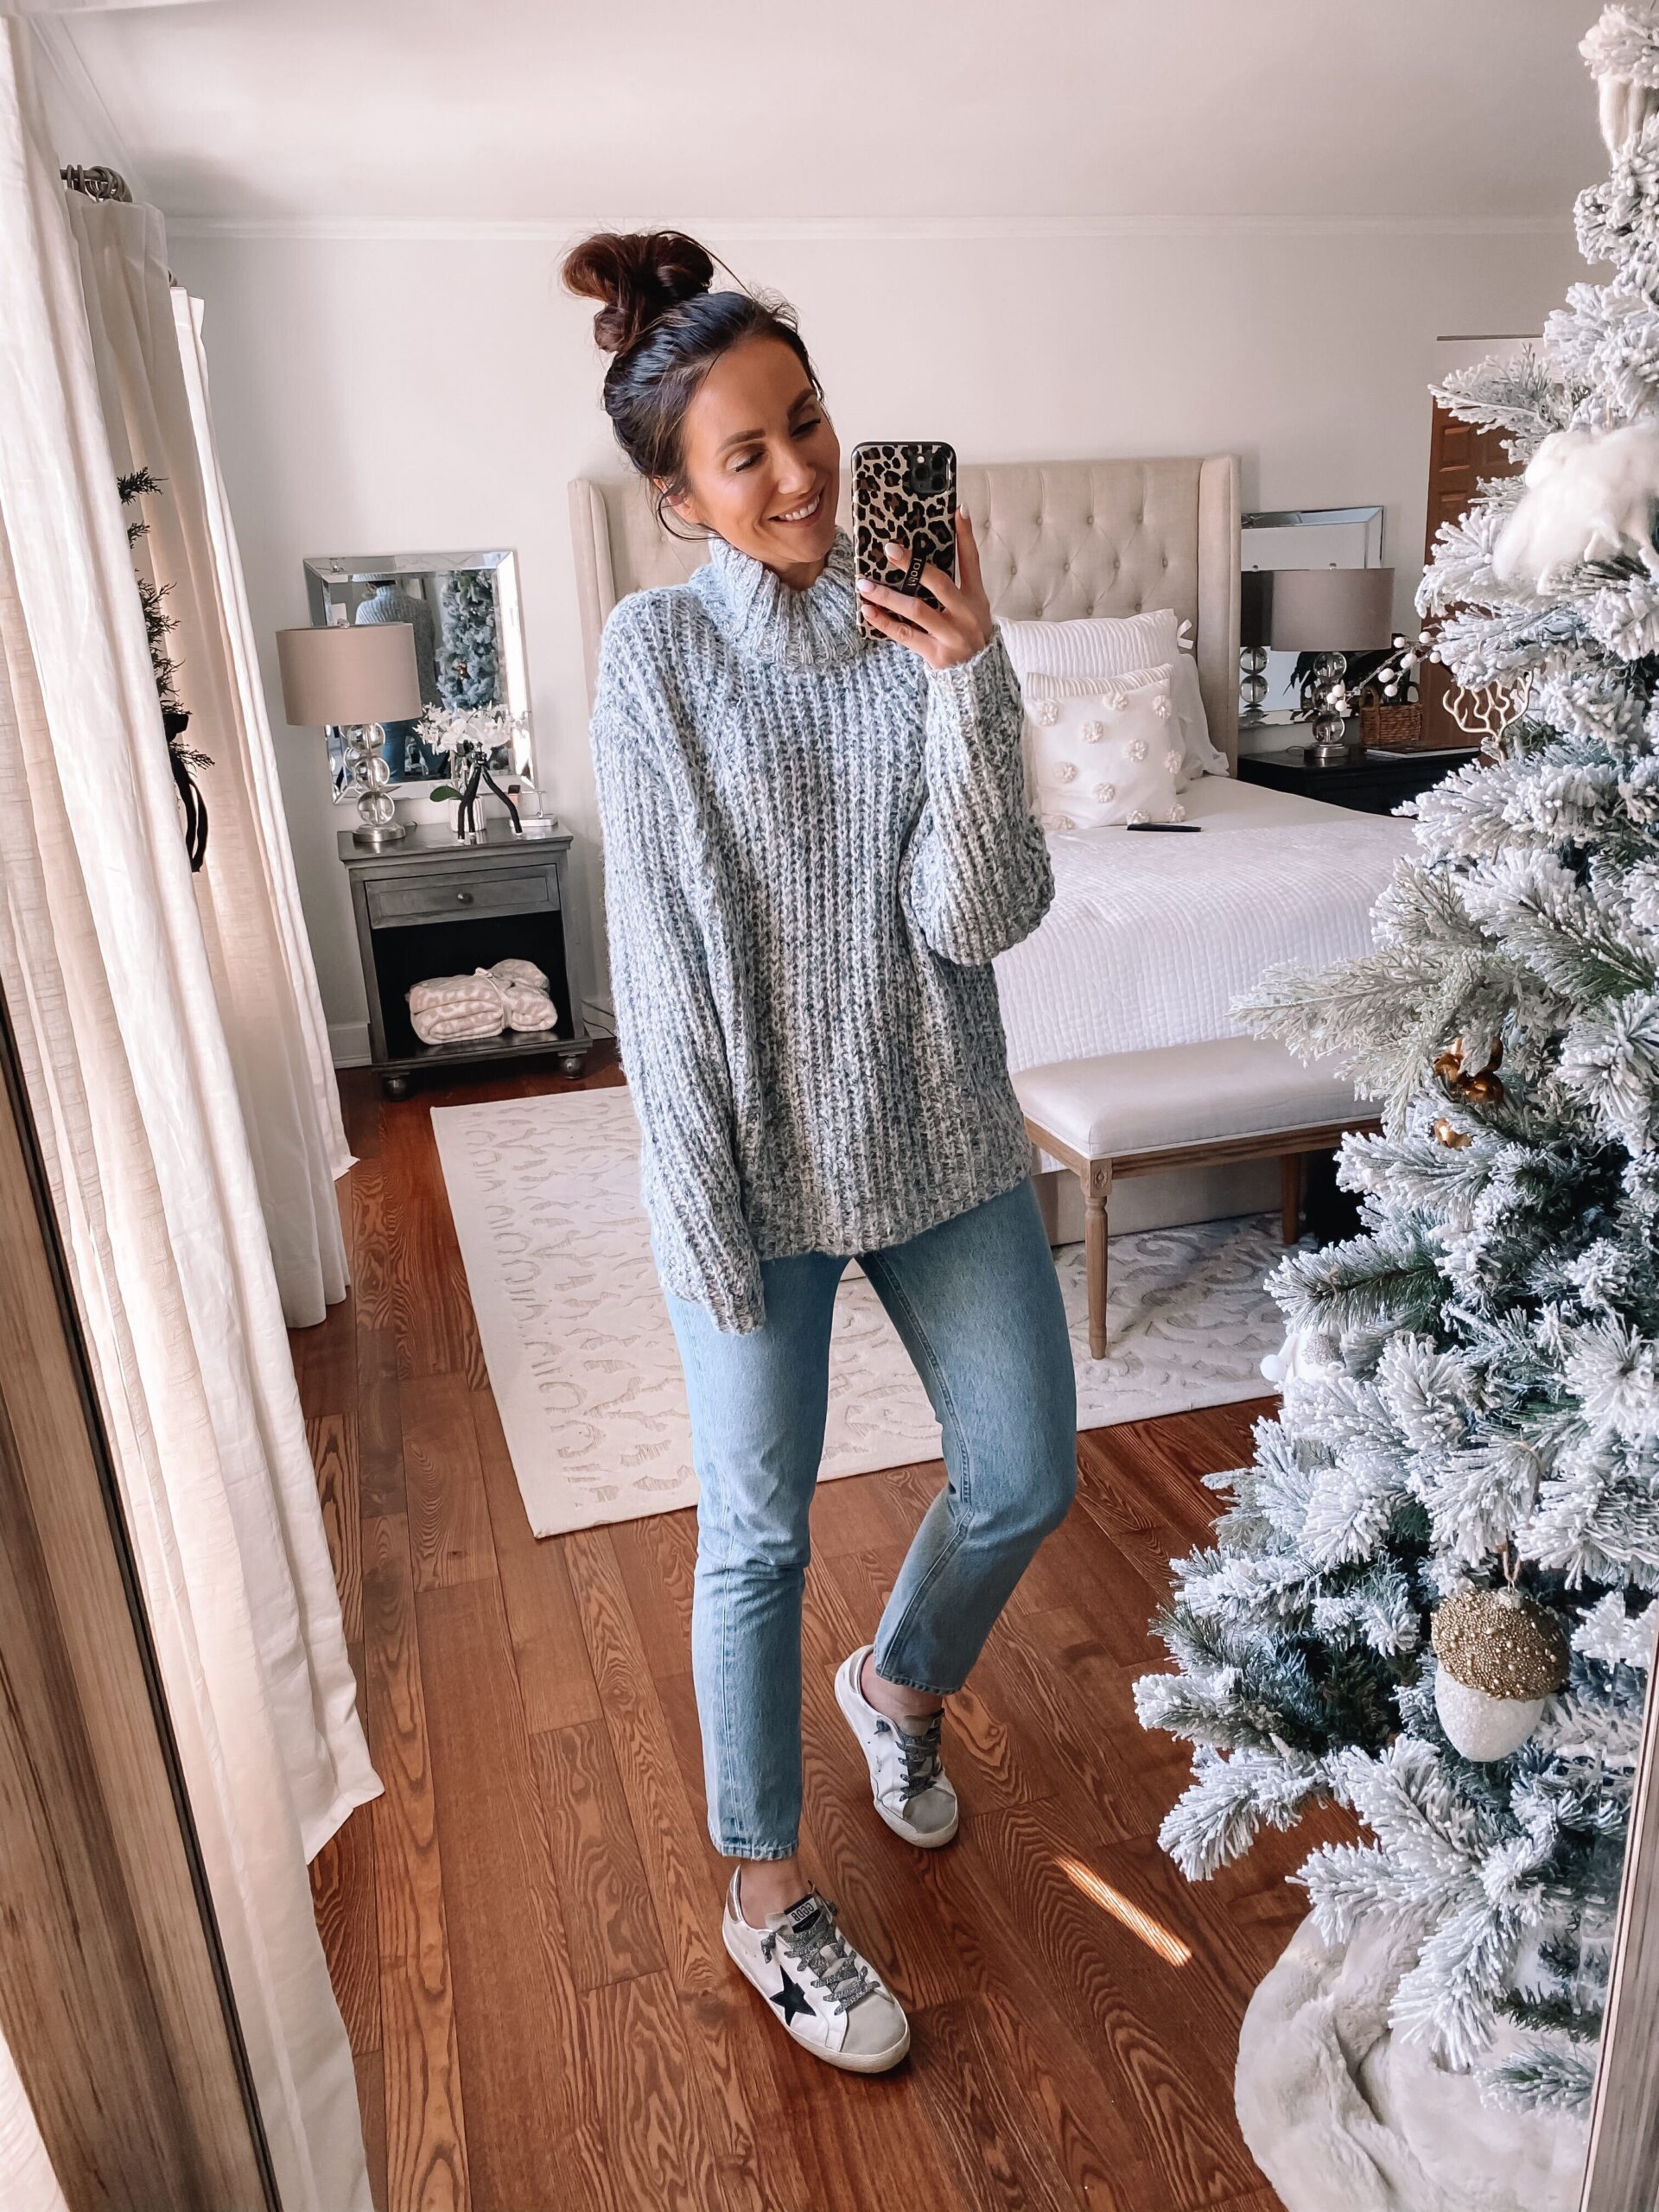 target style, grey sweater with jeans